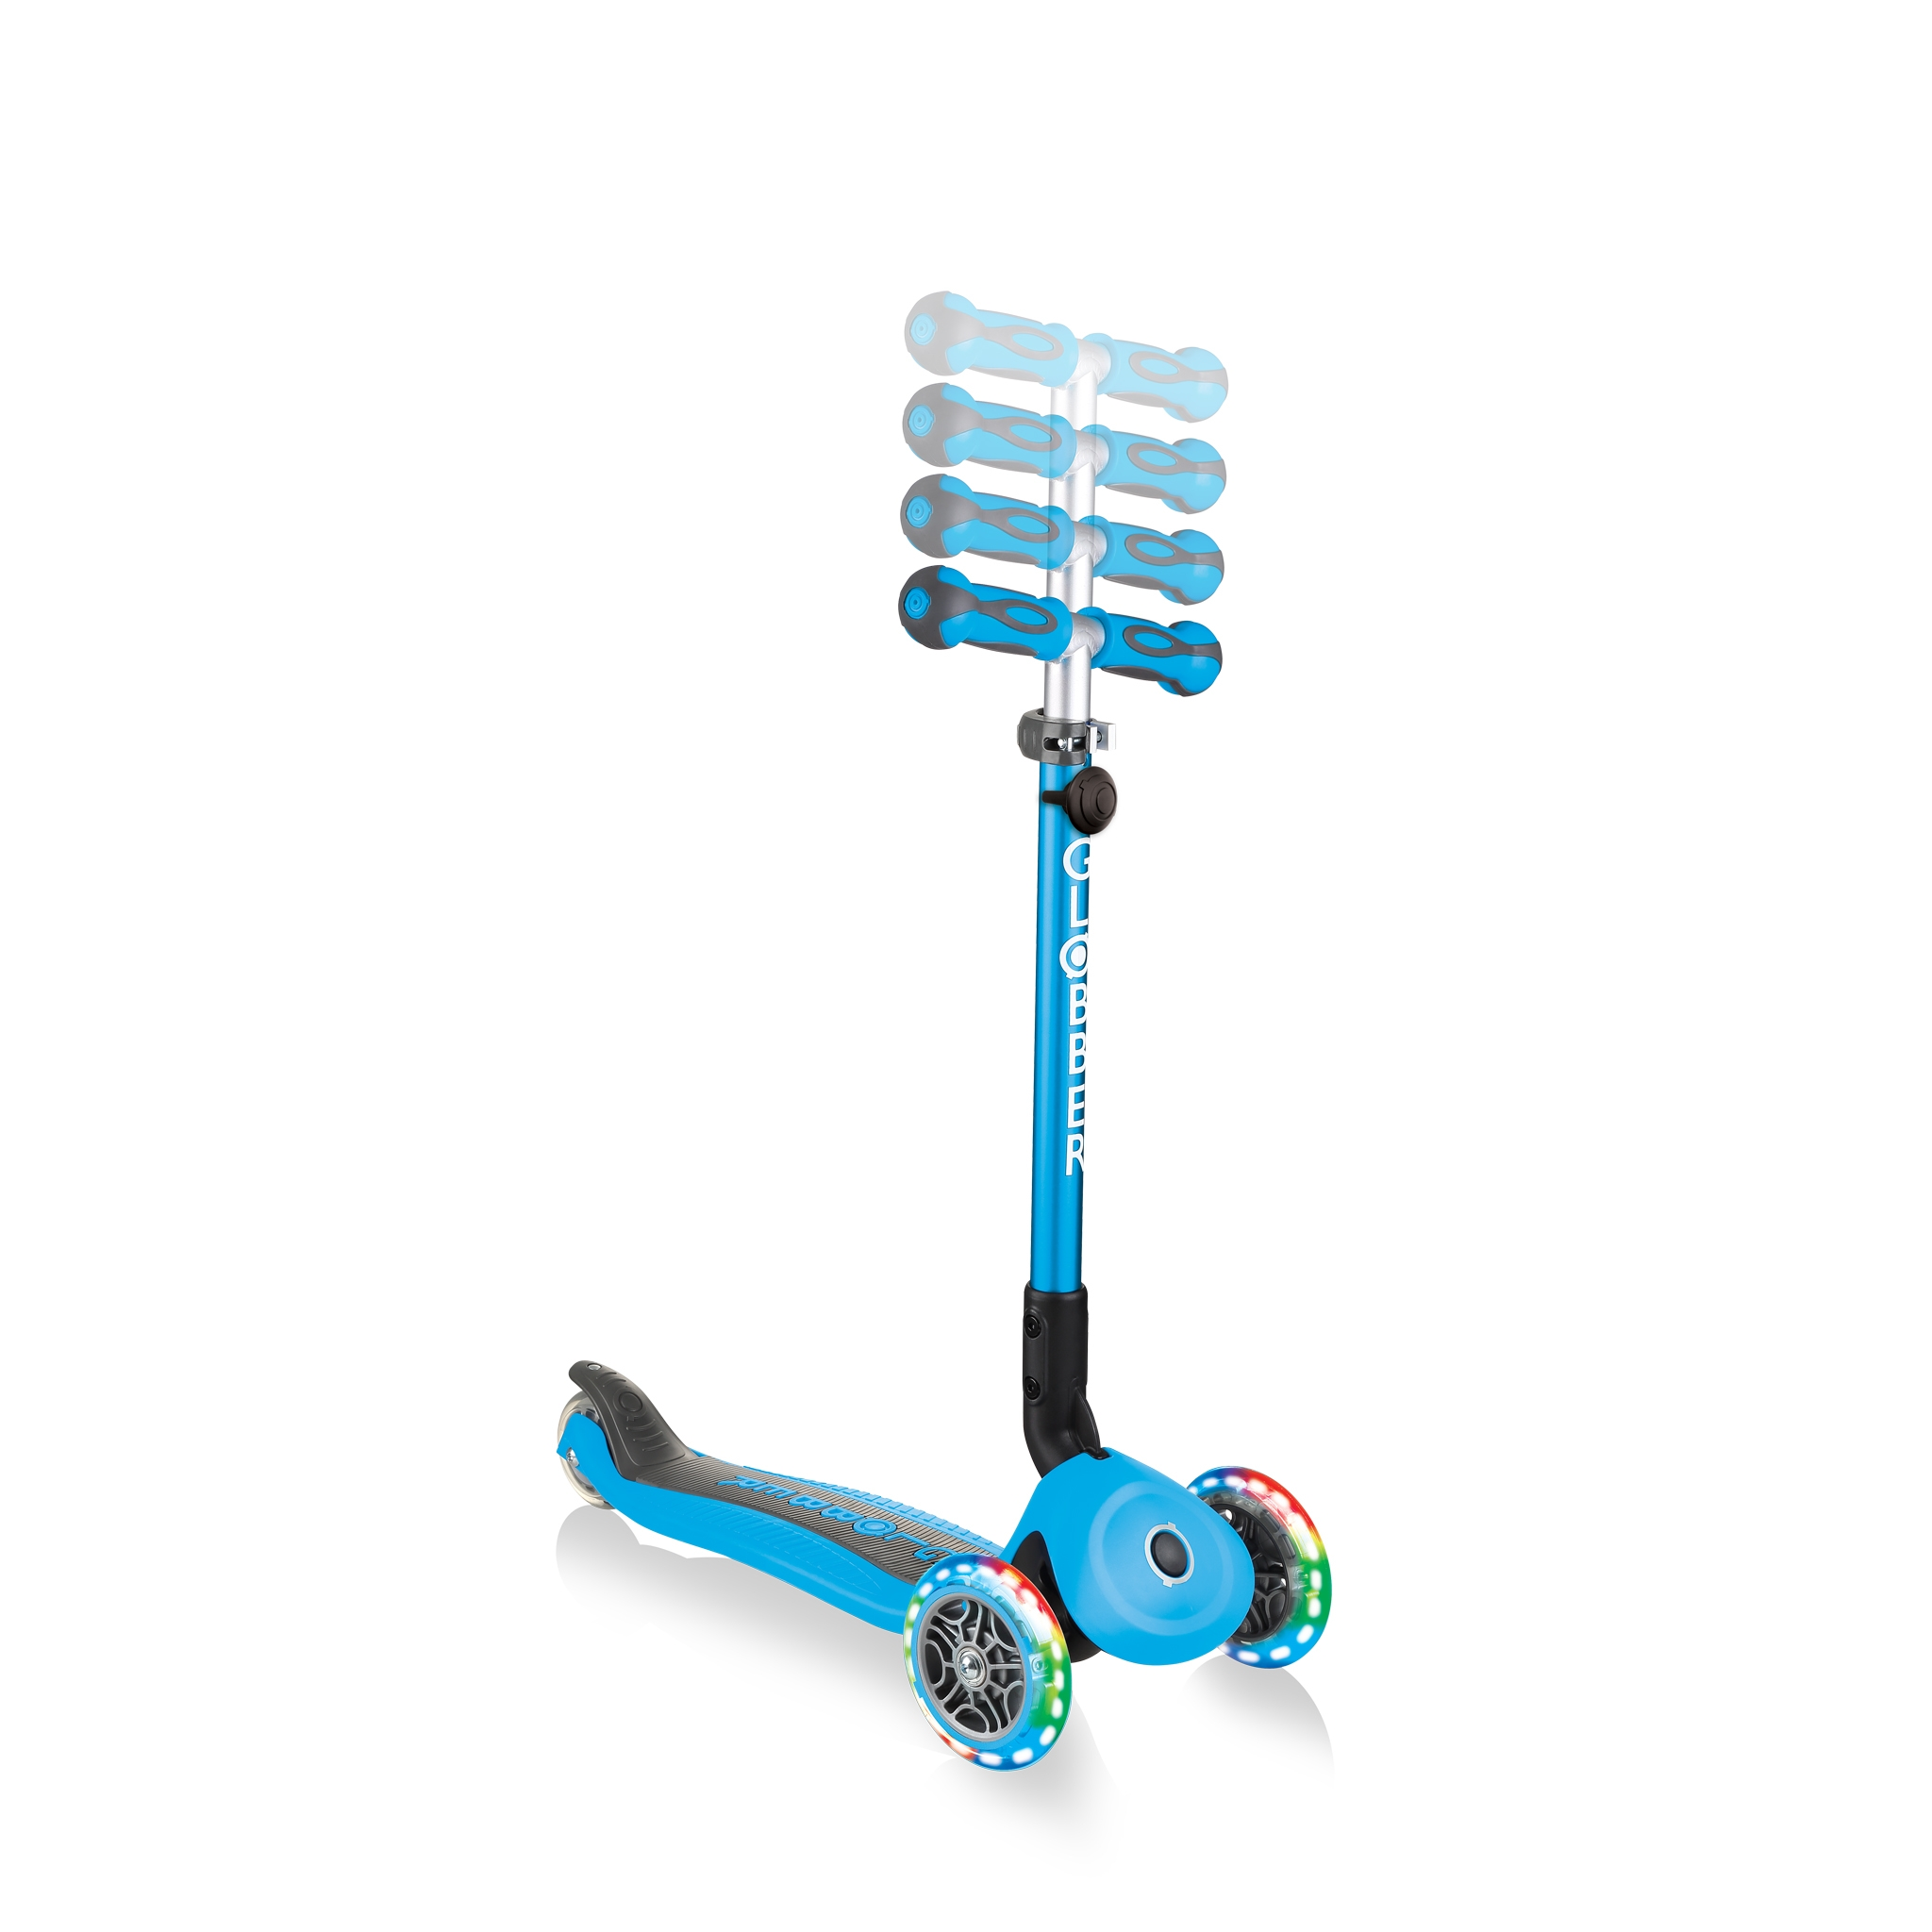 GO-UP-DELUXE-LIGHTS-ride-on-walking-bike-scooter-with-4-height-adjustable-T-bar-and-light-up-wheels-sky-blue